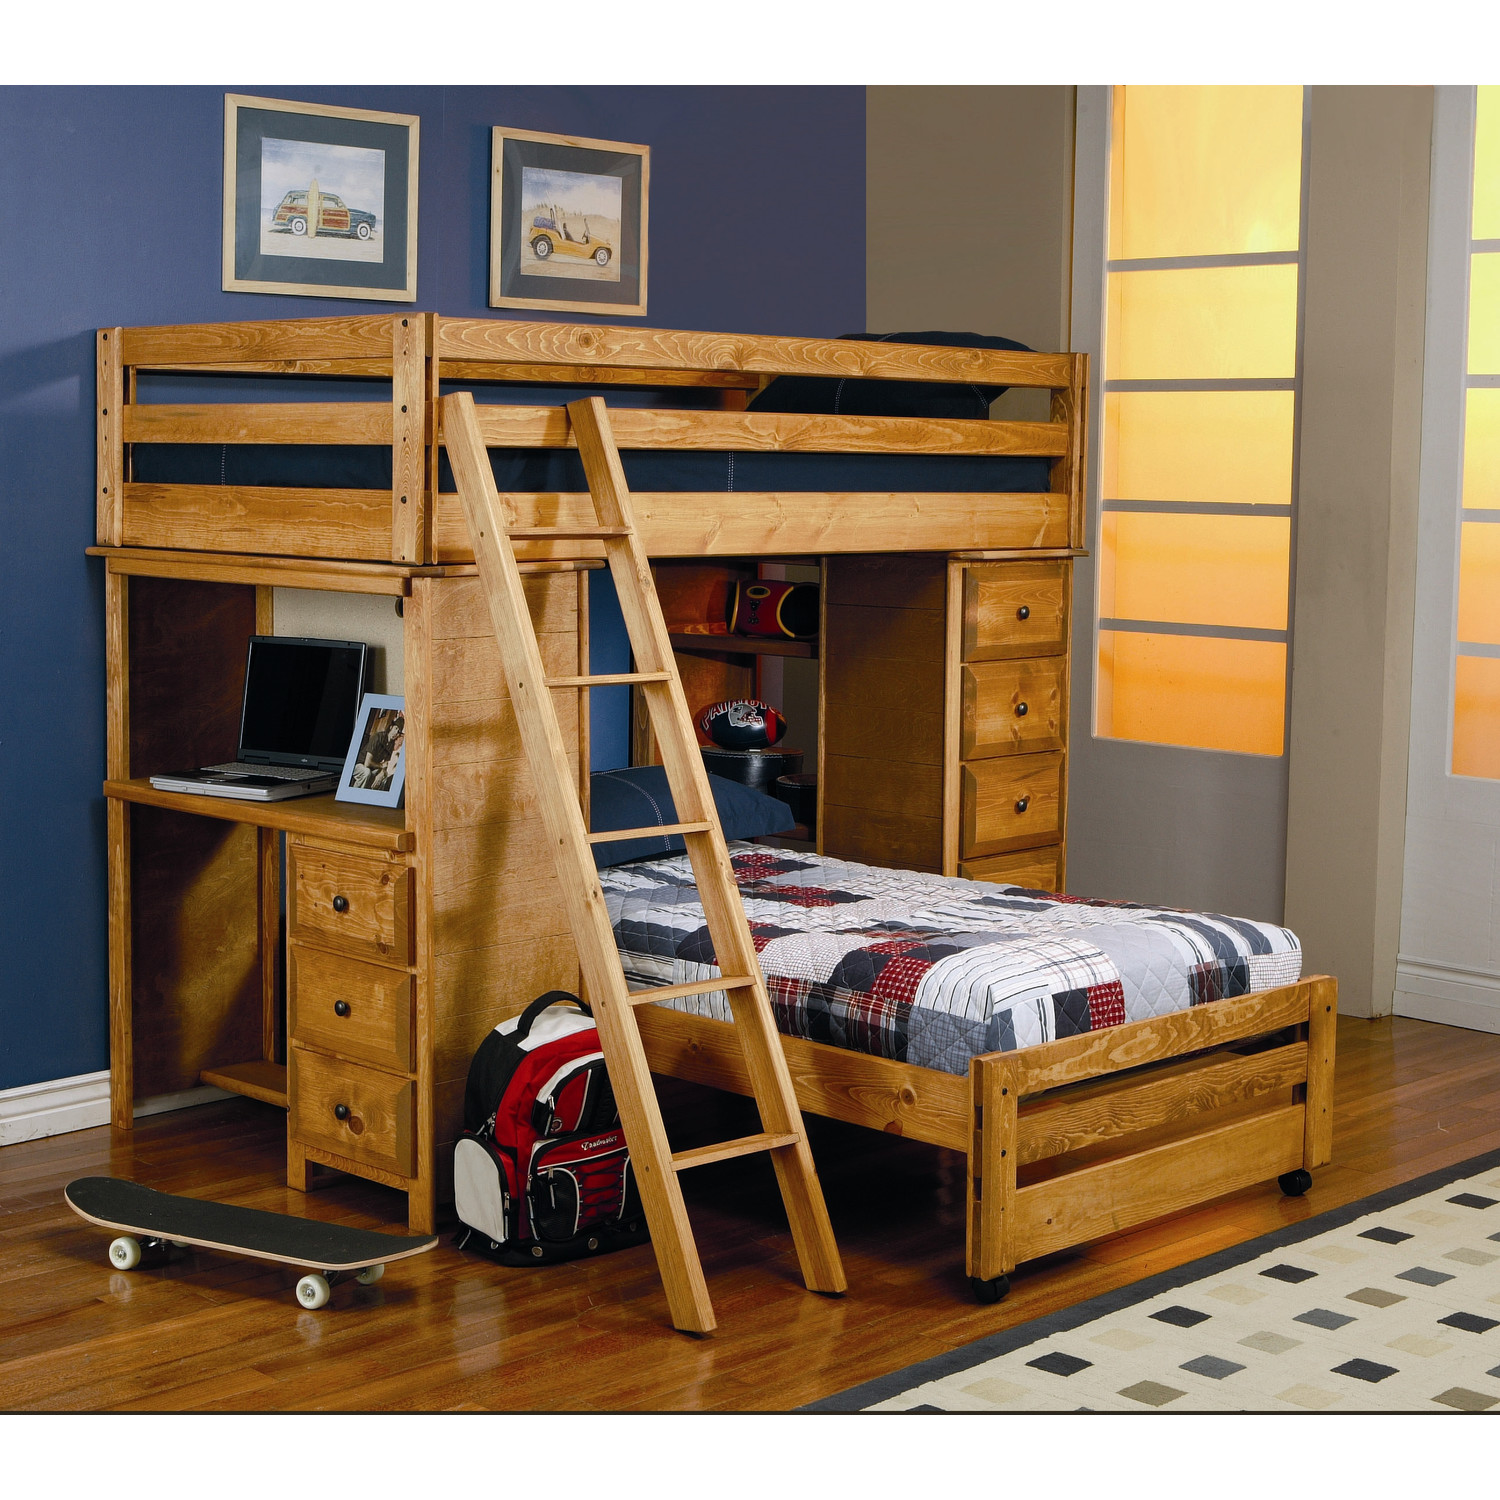 Childrens Storage Beds For Small Rooms bunk bed with storage uk. full size of. free kids bunk bed baby